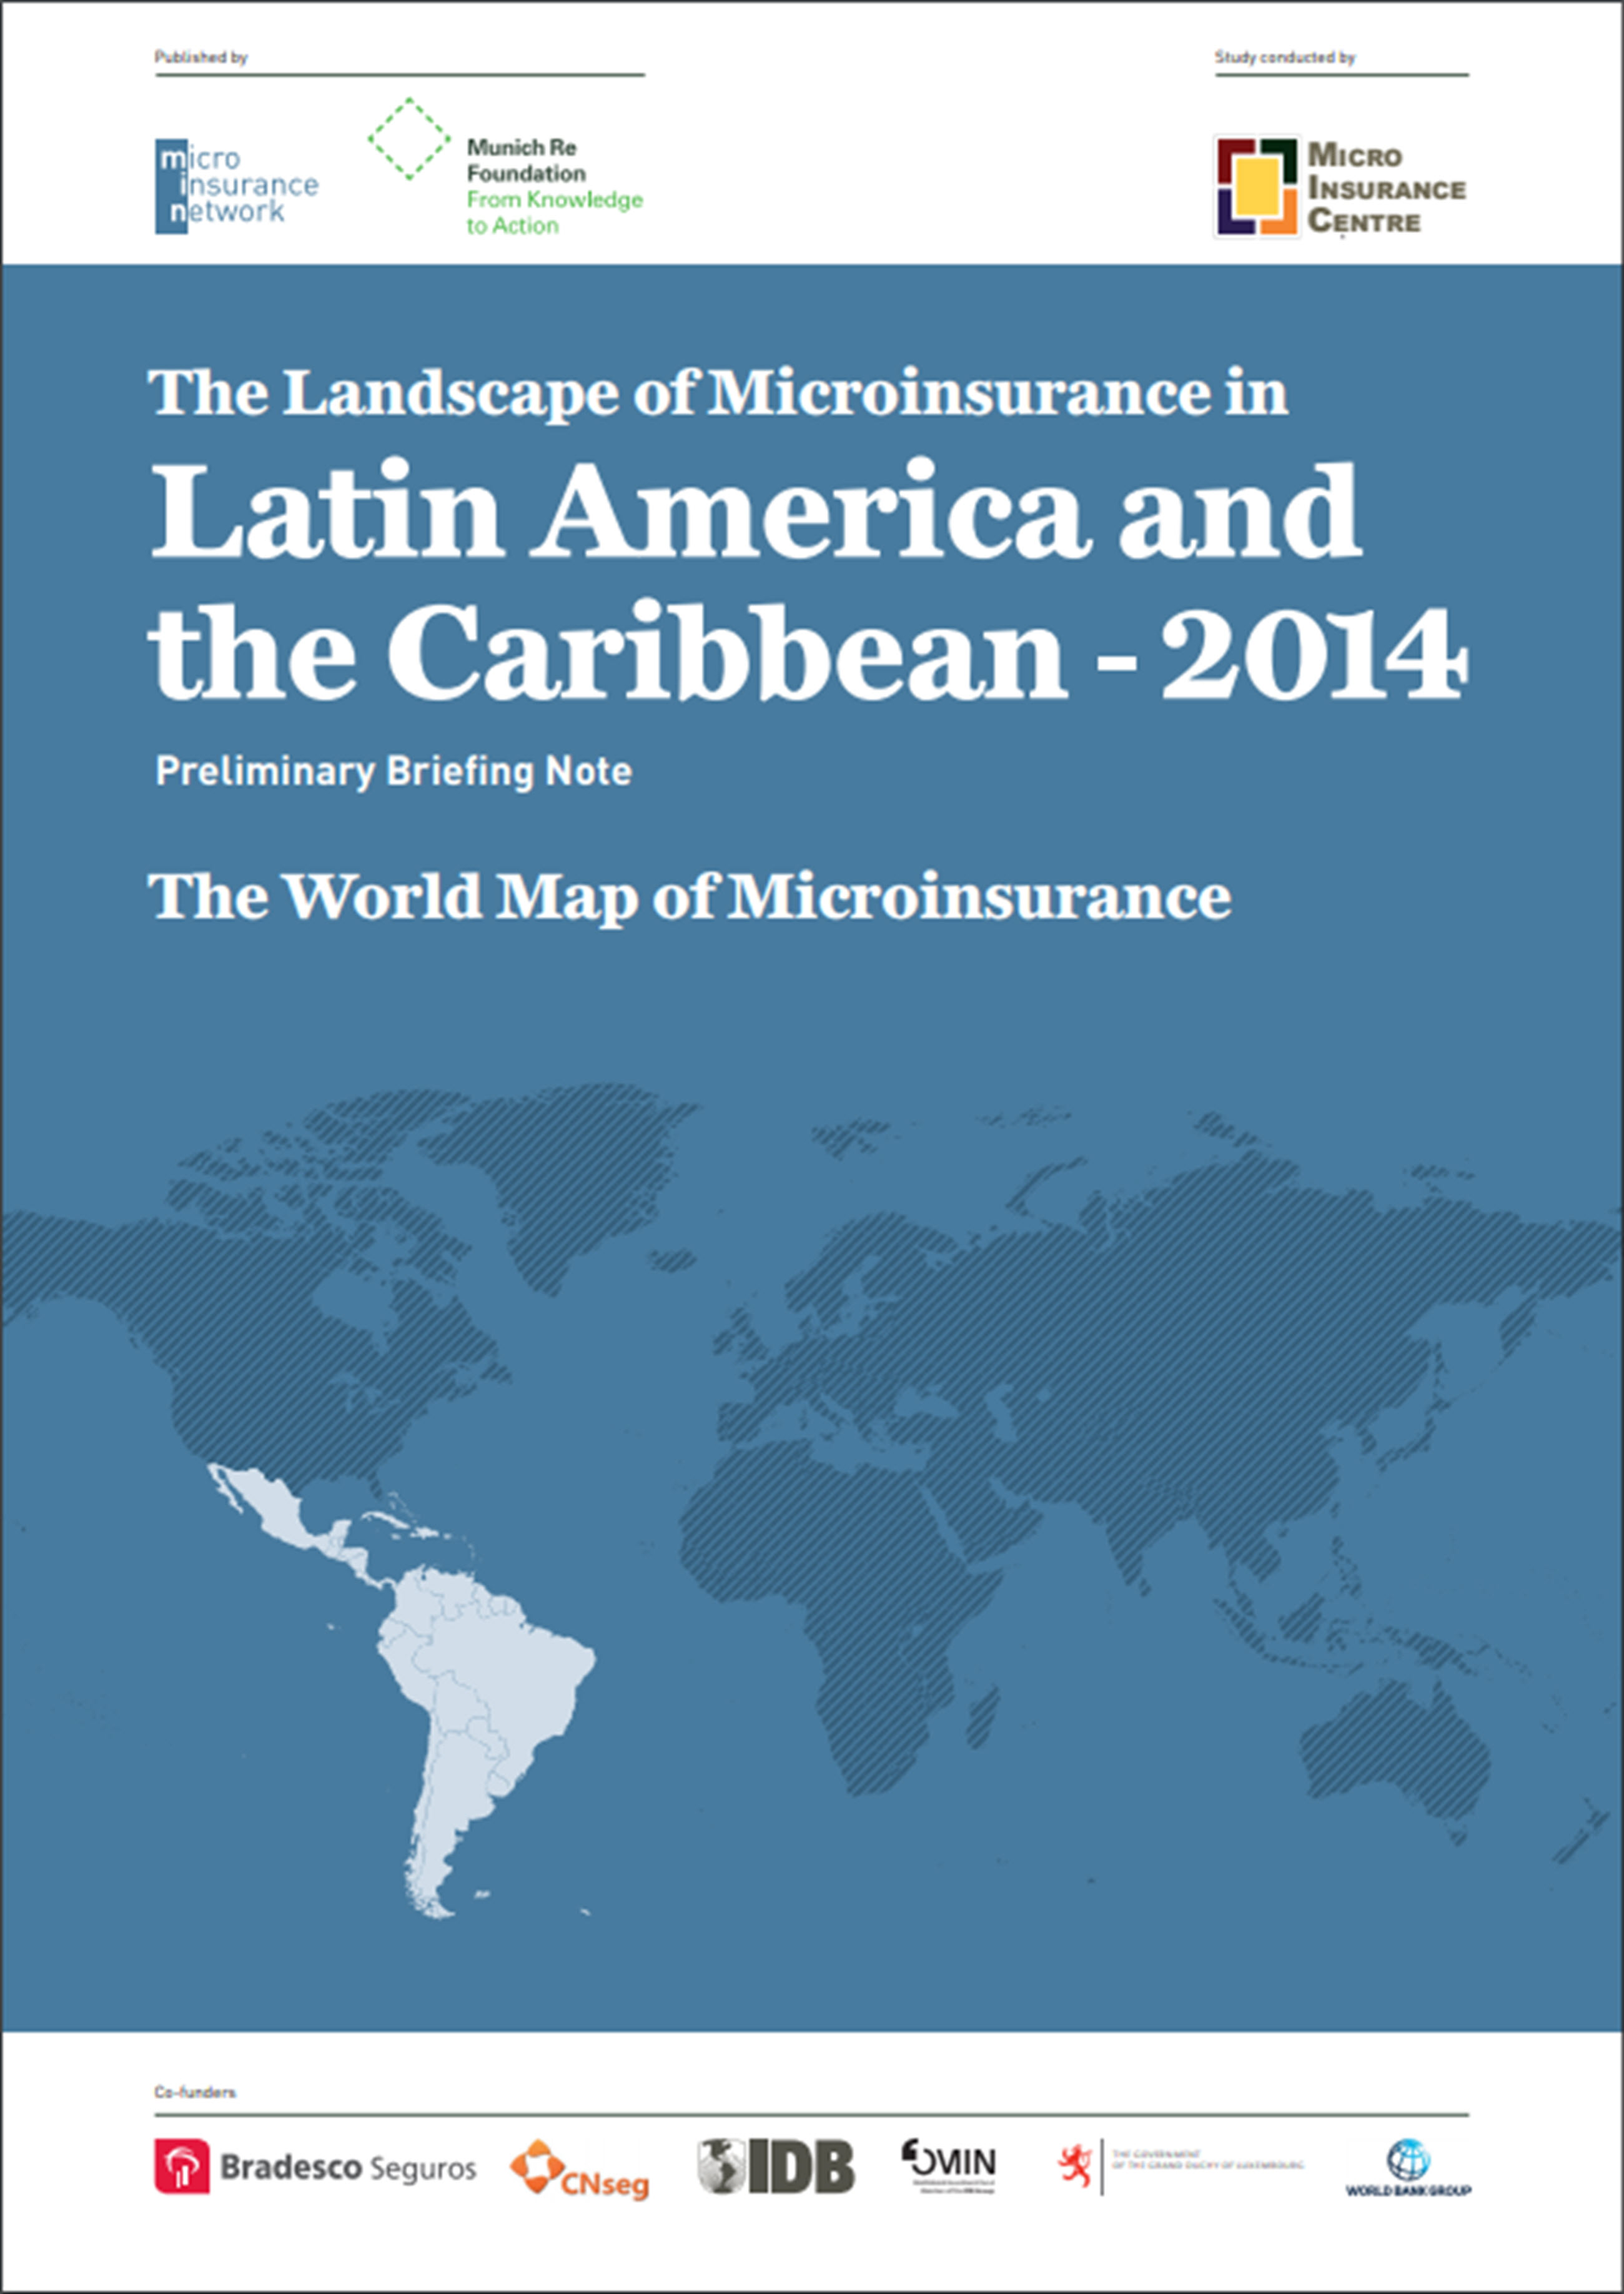 2014_Landscape study LA and Caribbean briefing note